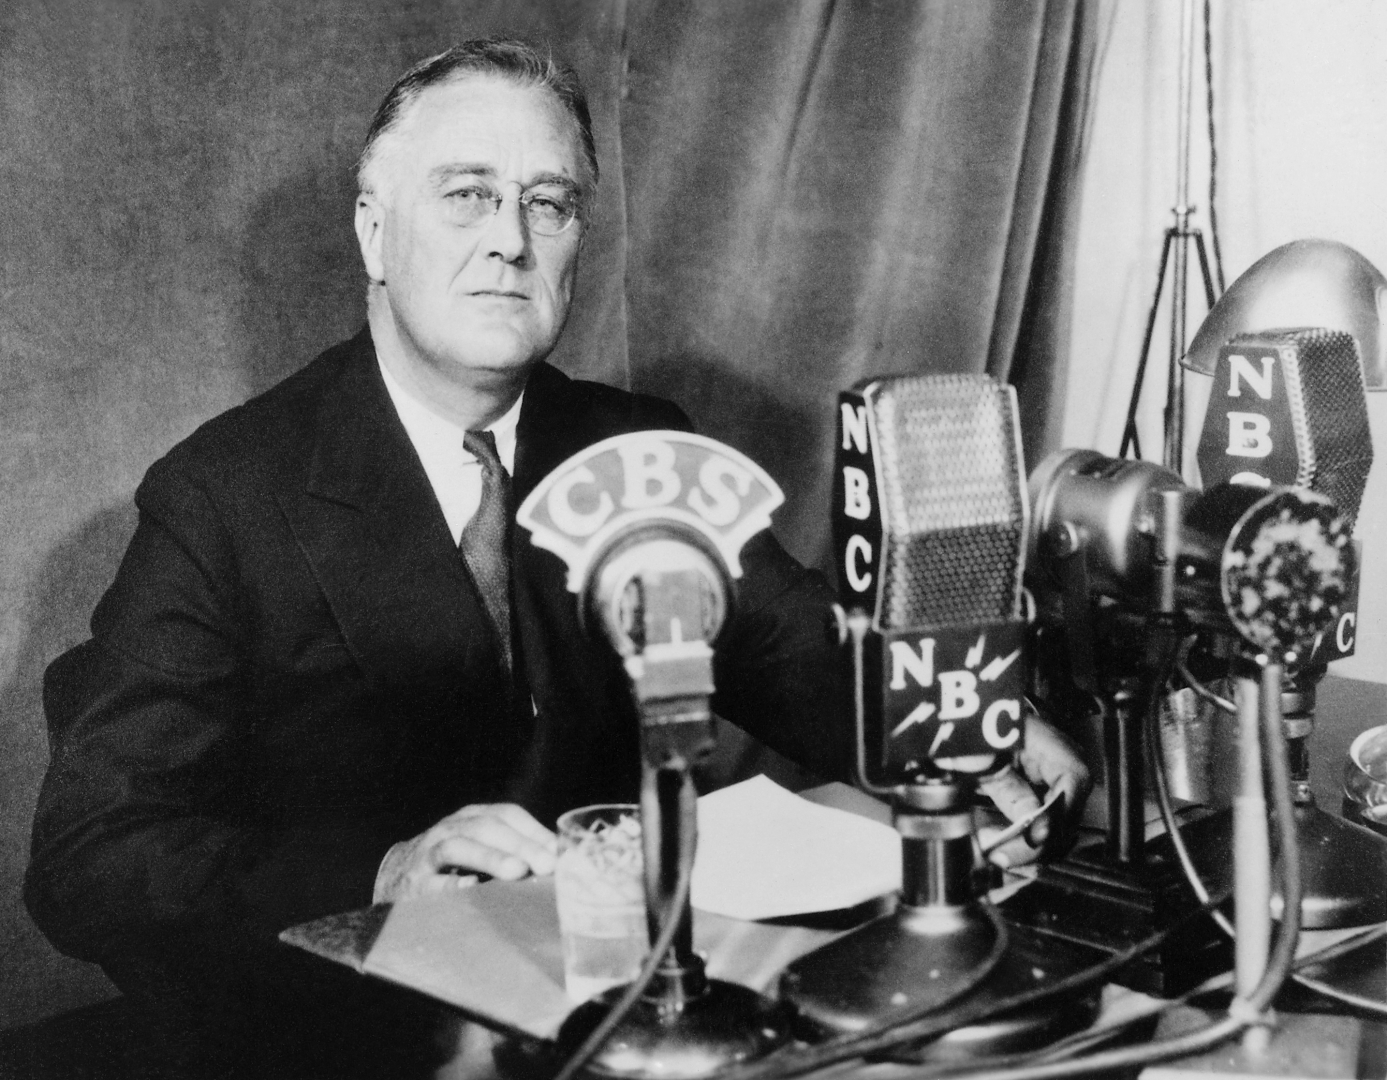 roosevelt chat Full text and audio mp3 of franklin delano roosevelt speech - first fireside chat.